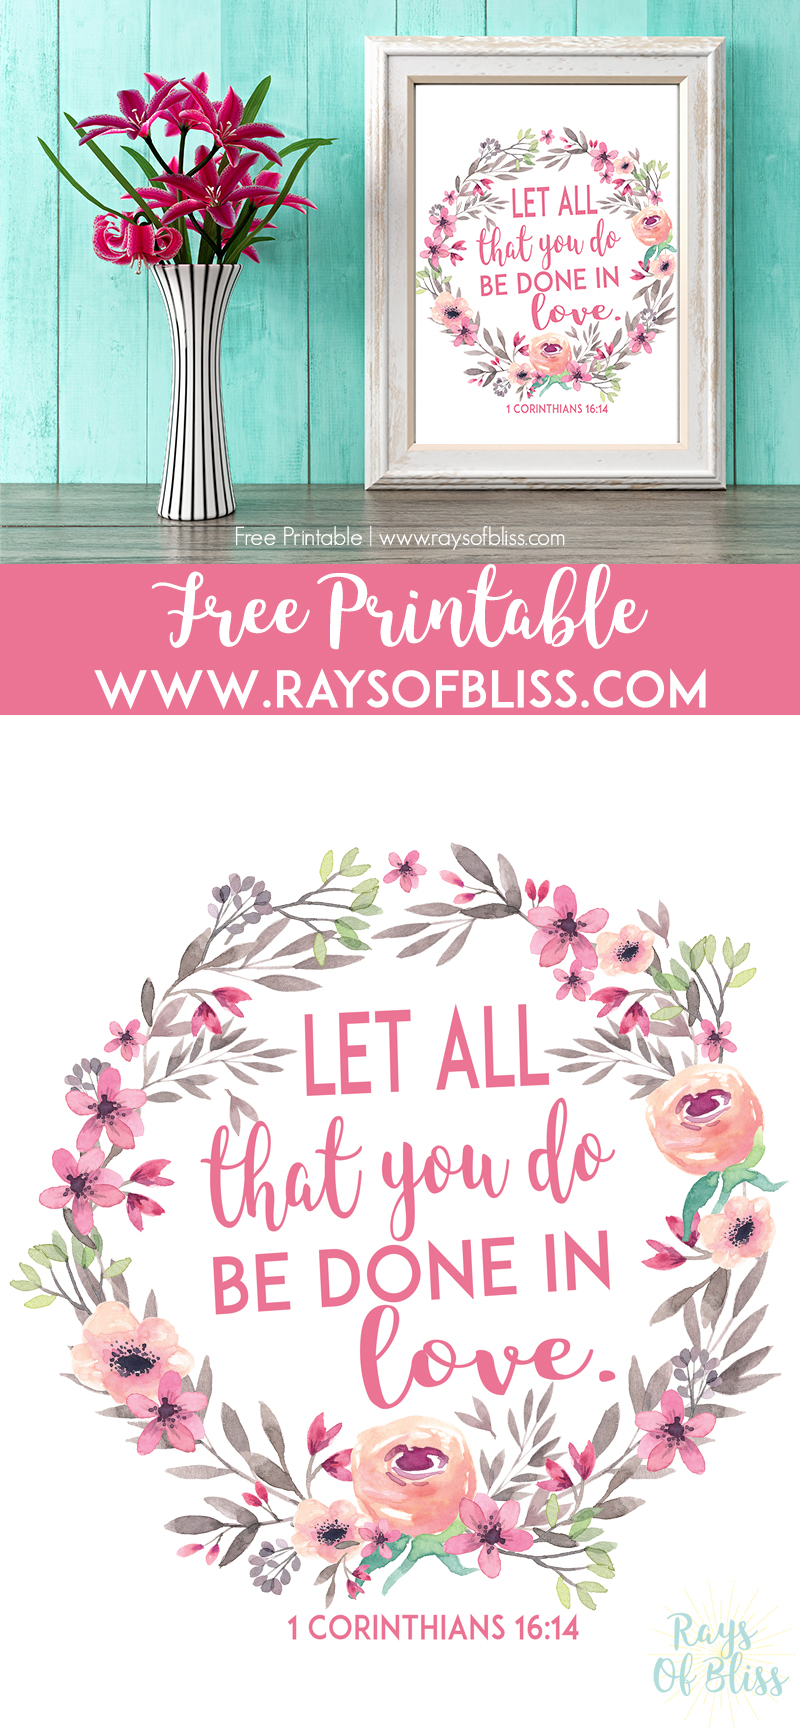 photograph relating to Free Printable Bible Verses identified as Young children Bible Verses Totally free Printables - Fastened of 4 - Rays of Bliss